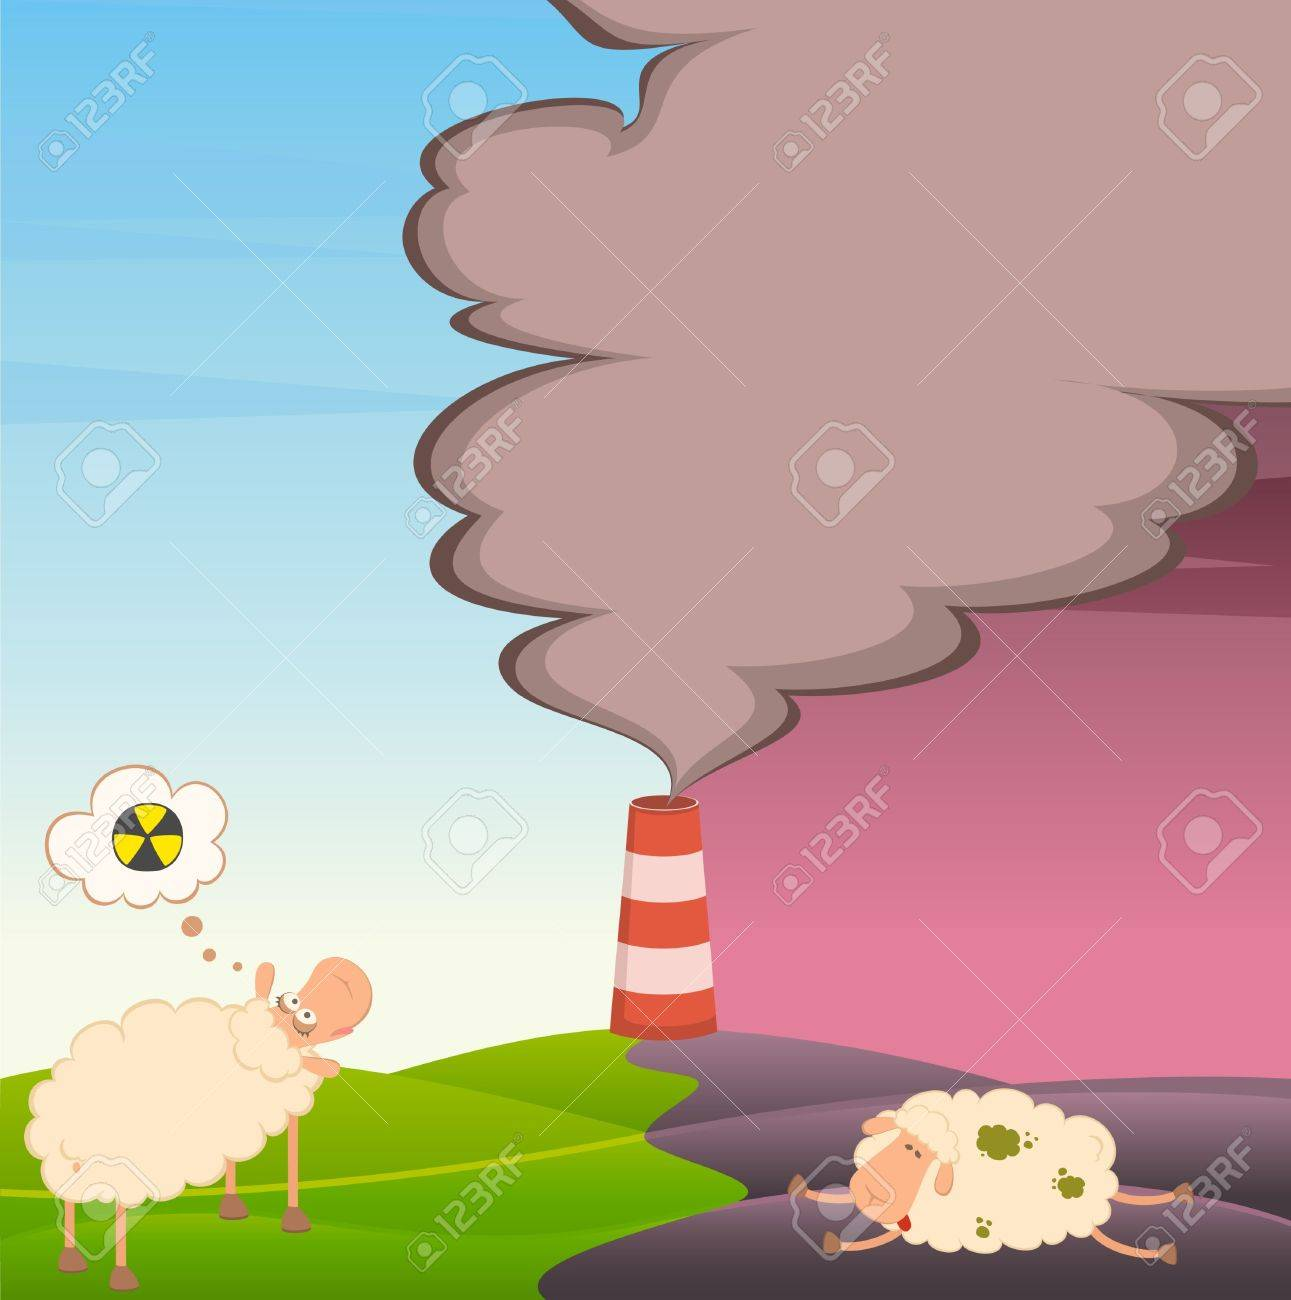 healthy sheep looks at a dead sheep Stock Photo - 7466793